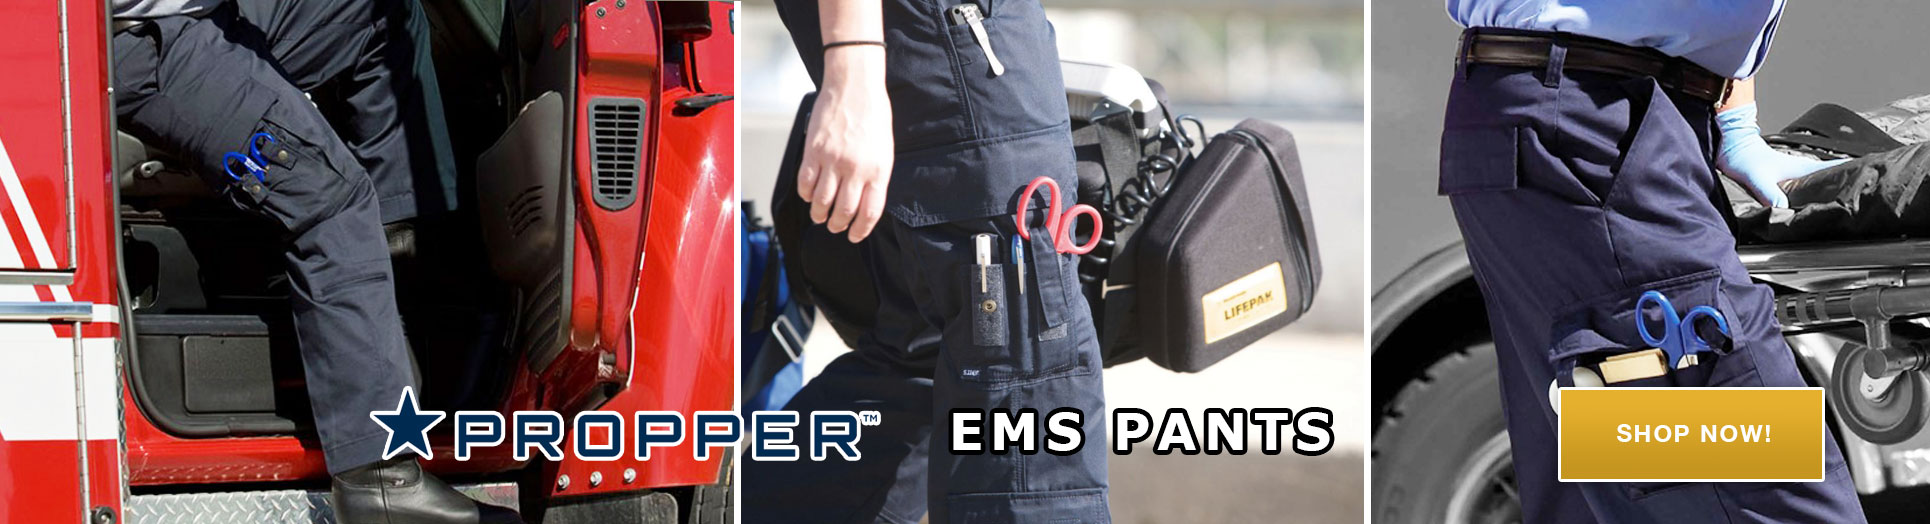 shop-propper-ems-pants.jpg